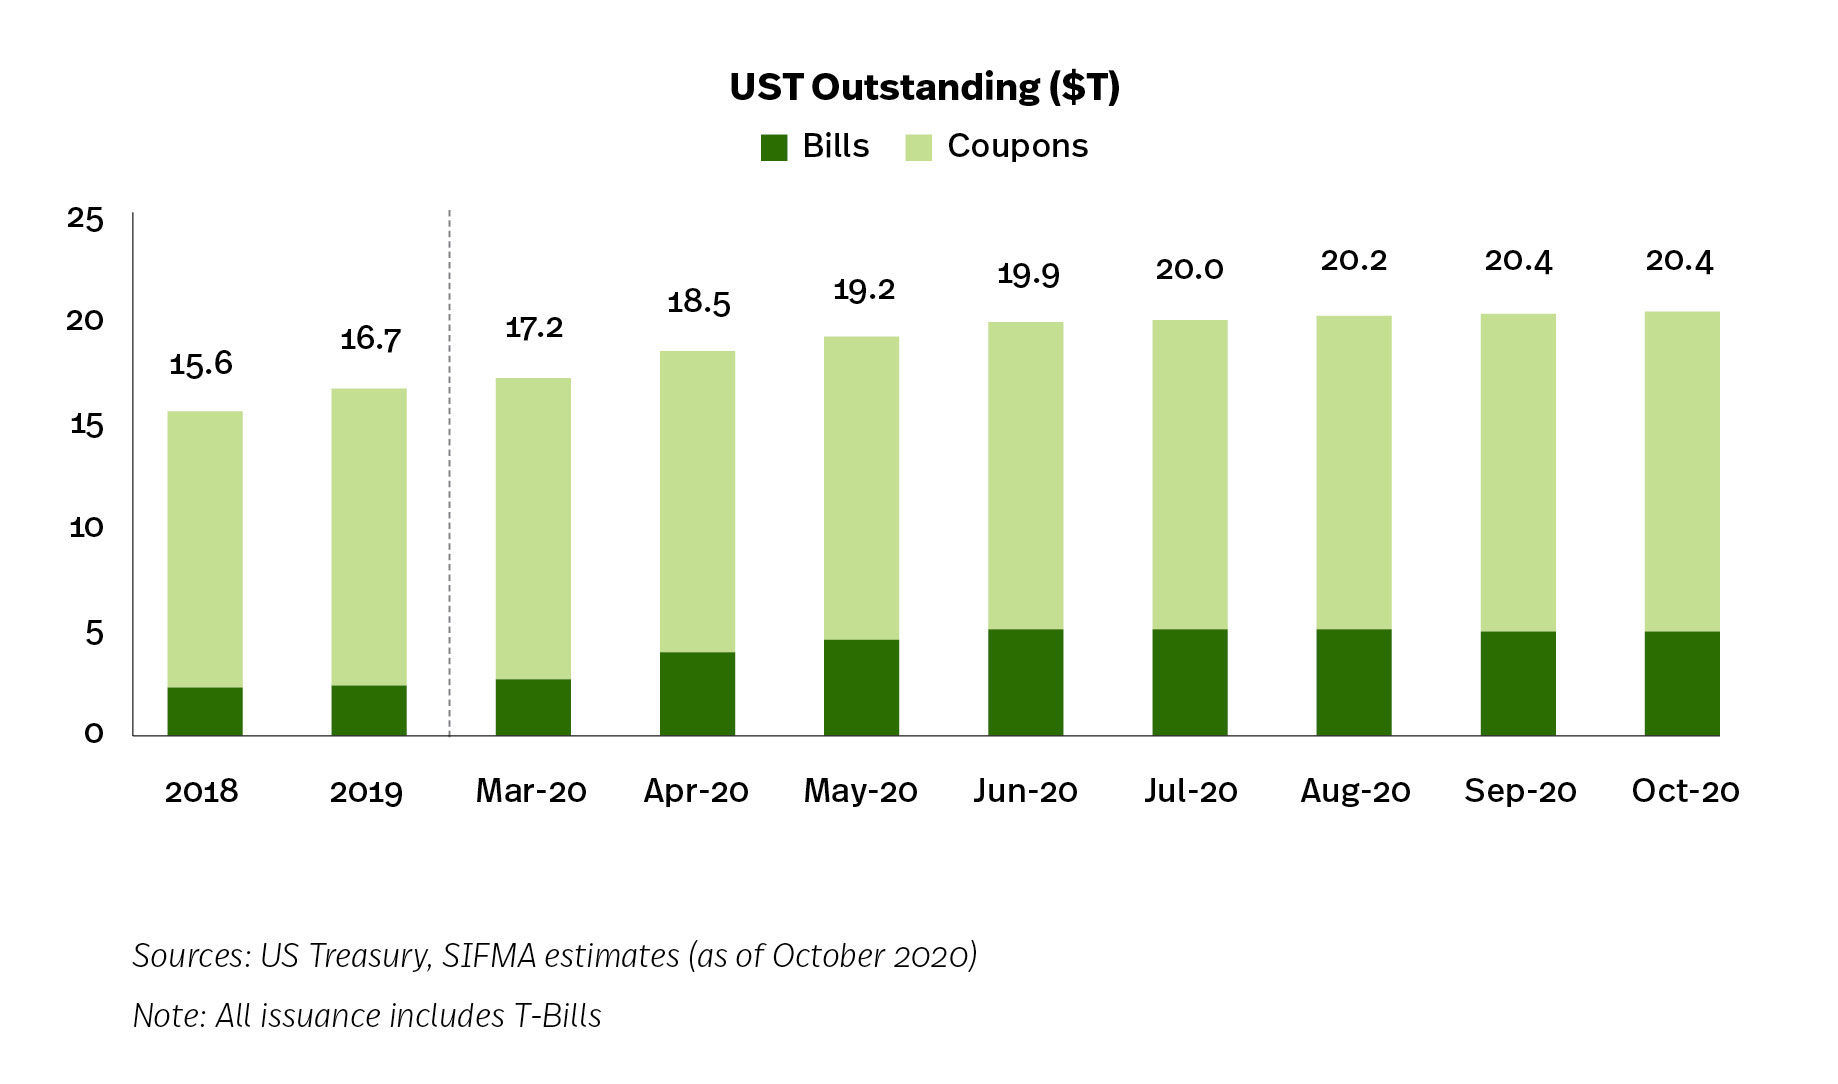 UST Issuance to Fund COVID-19 Stimulus